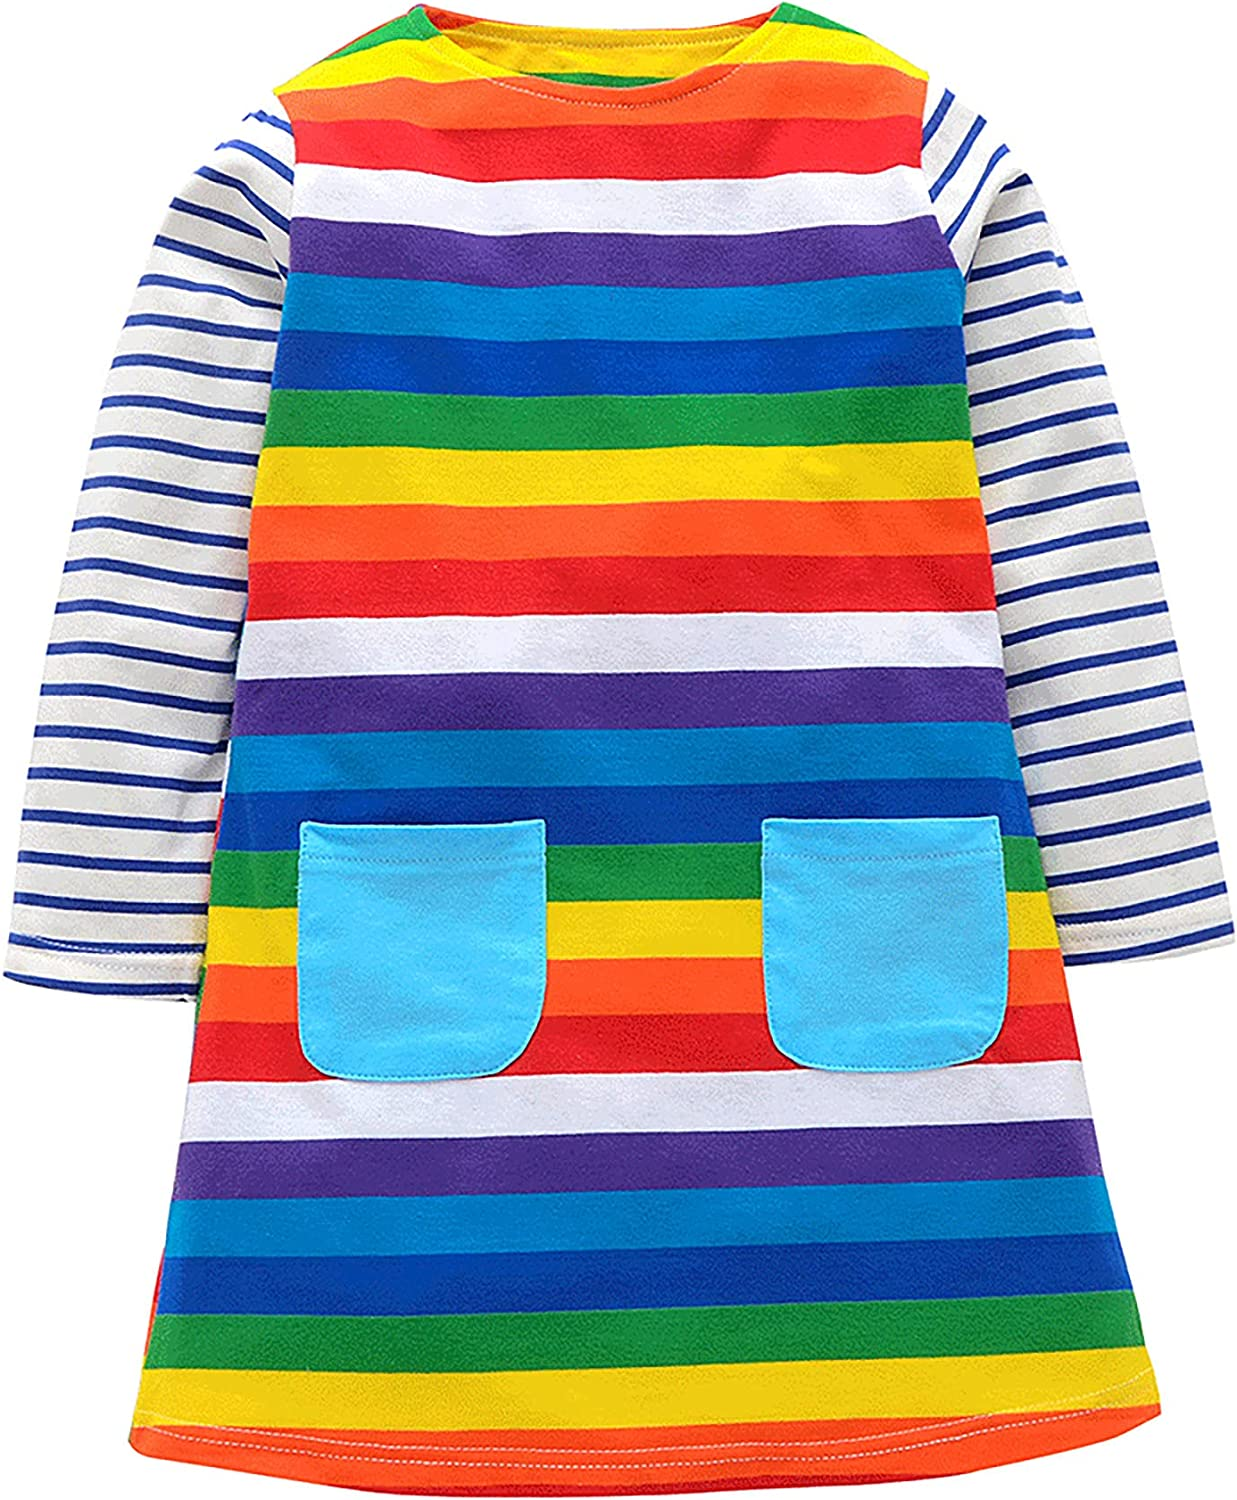 LuckyCandy Toddler Girls Dresses Rainbow Animals All-Over Print Long Sleeve A-Line Dress for 2T-7T